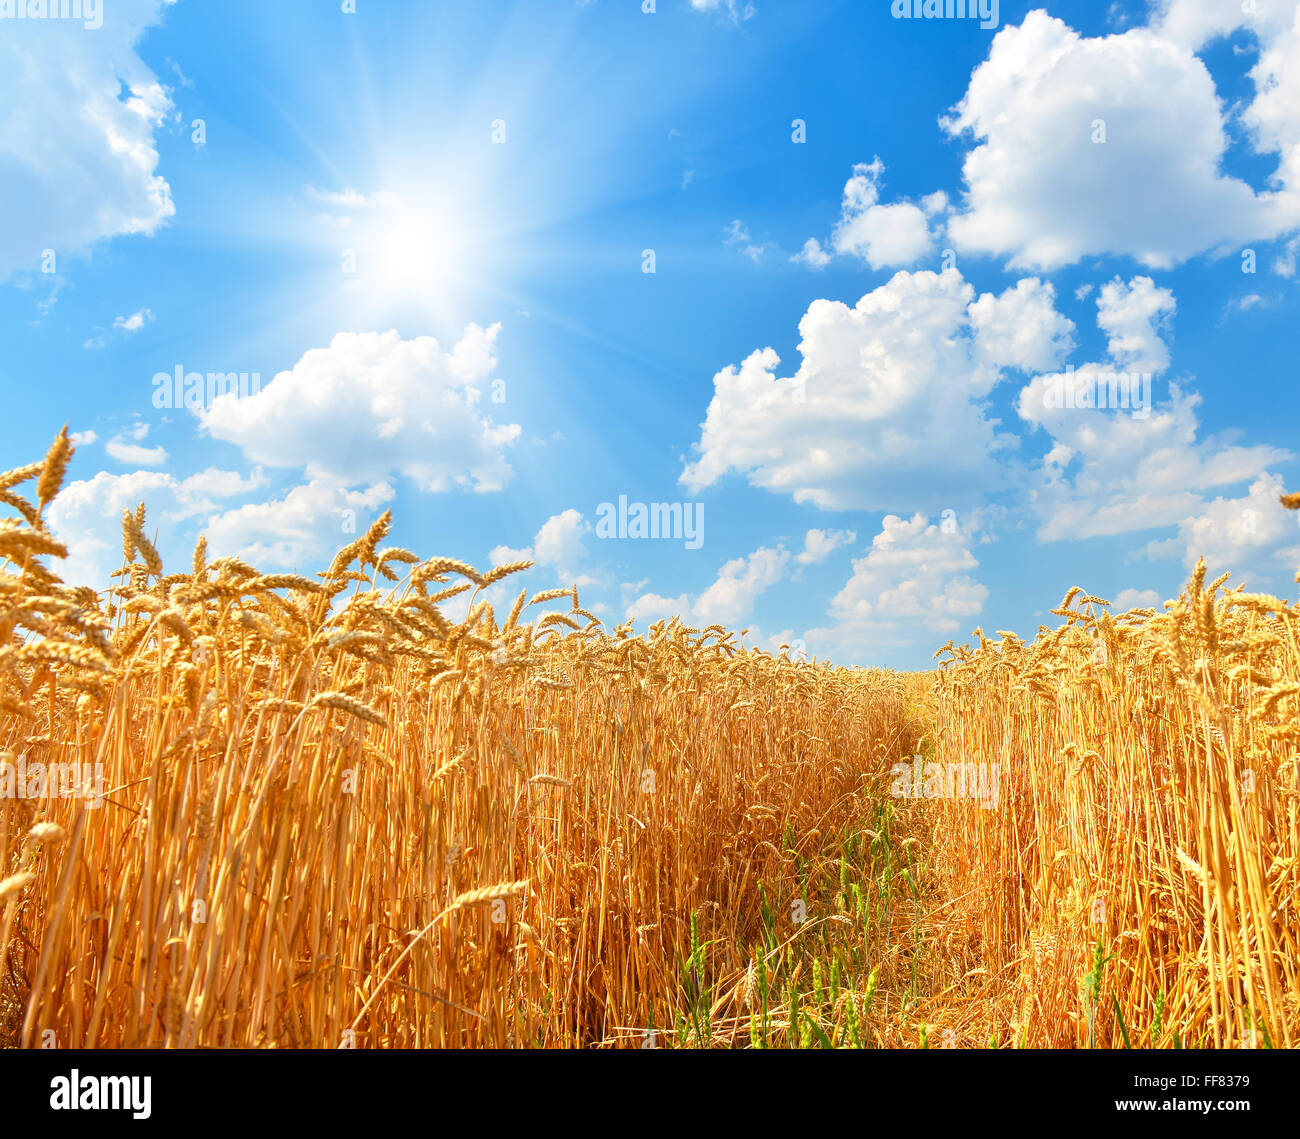 Wheat field in summer countryside - Stock Image